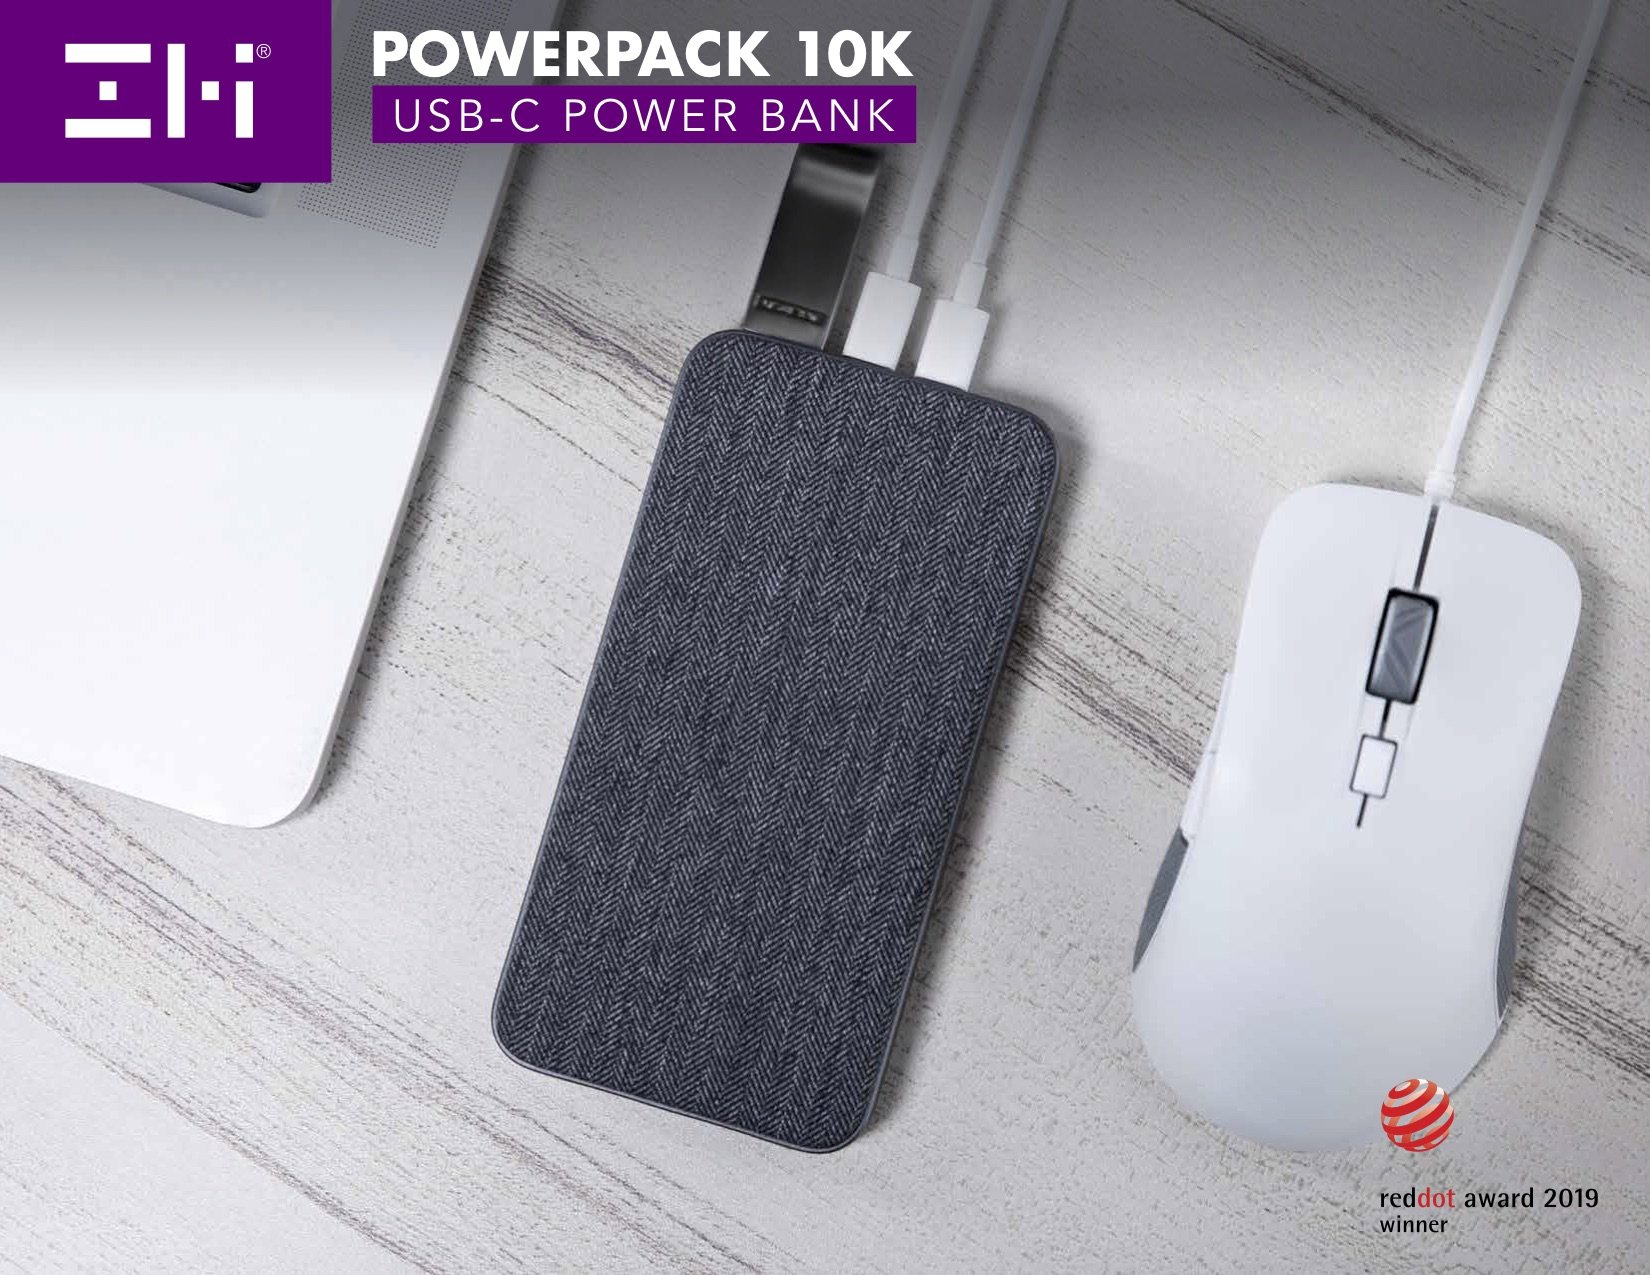 ZMI PowerPack 10K USB-C Power Bank (iPhone Cords Sold Separately)